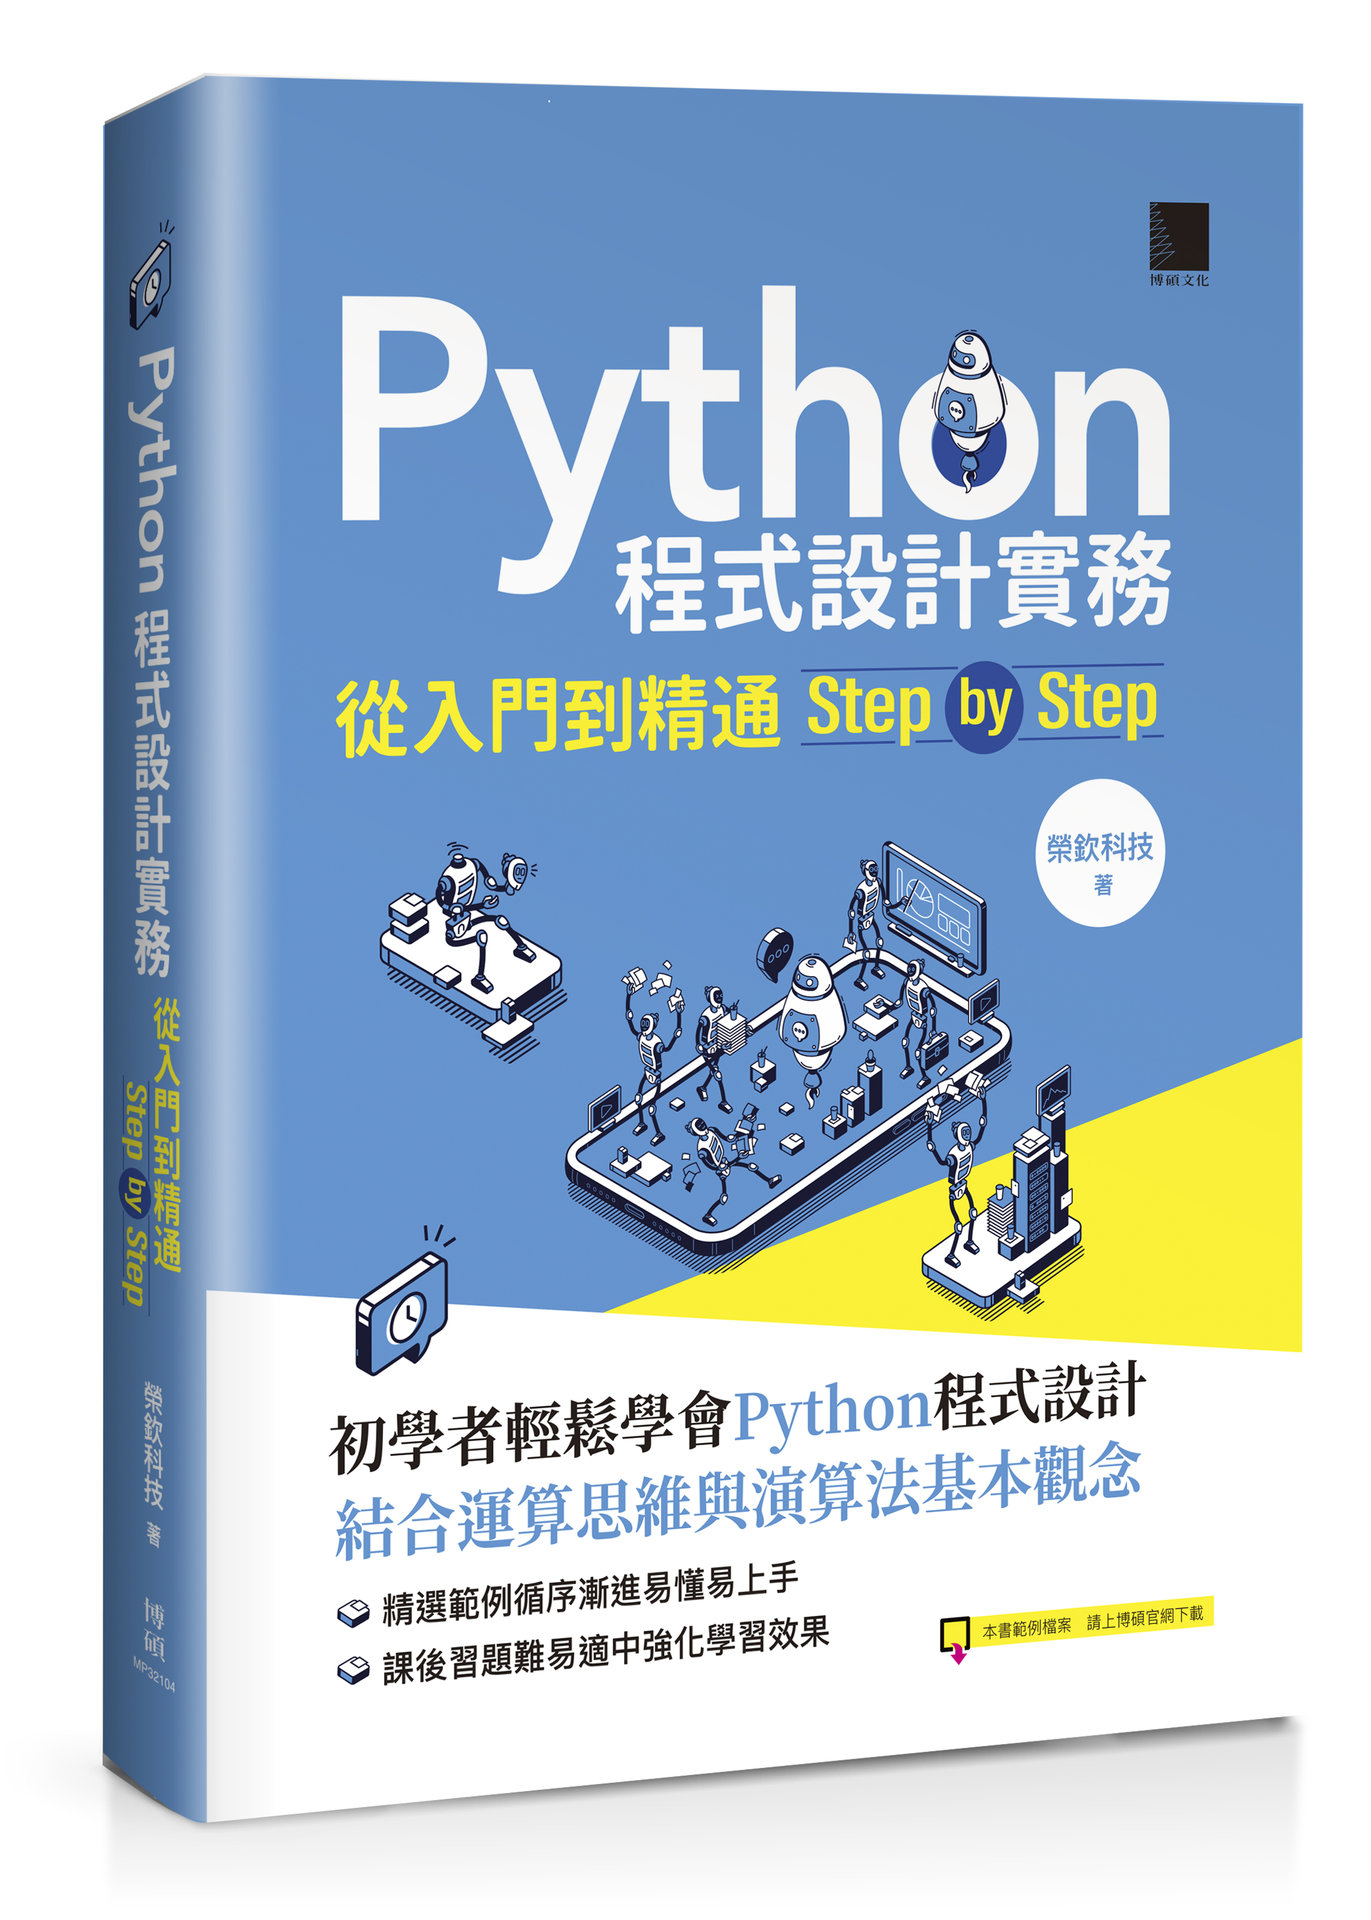 Python 程式設計實務 -- 從入門到精通 step by step-preview-1